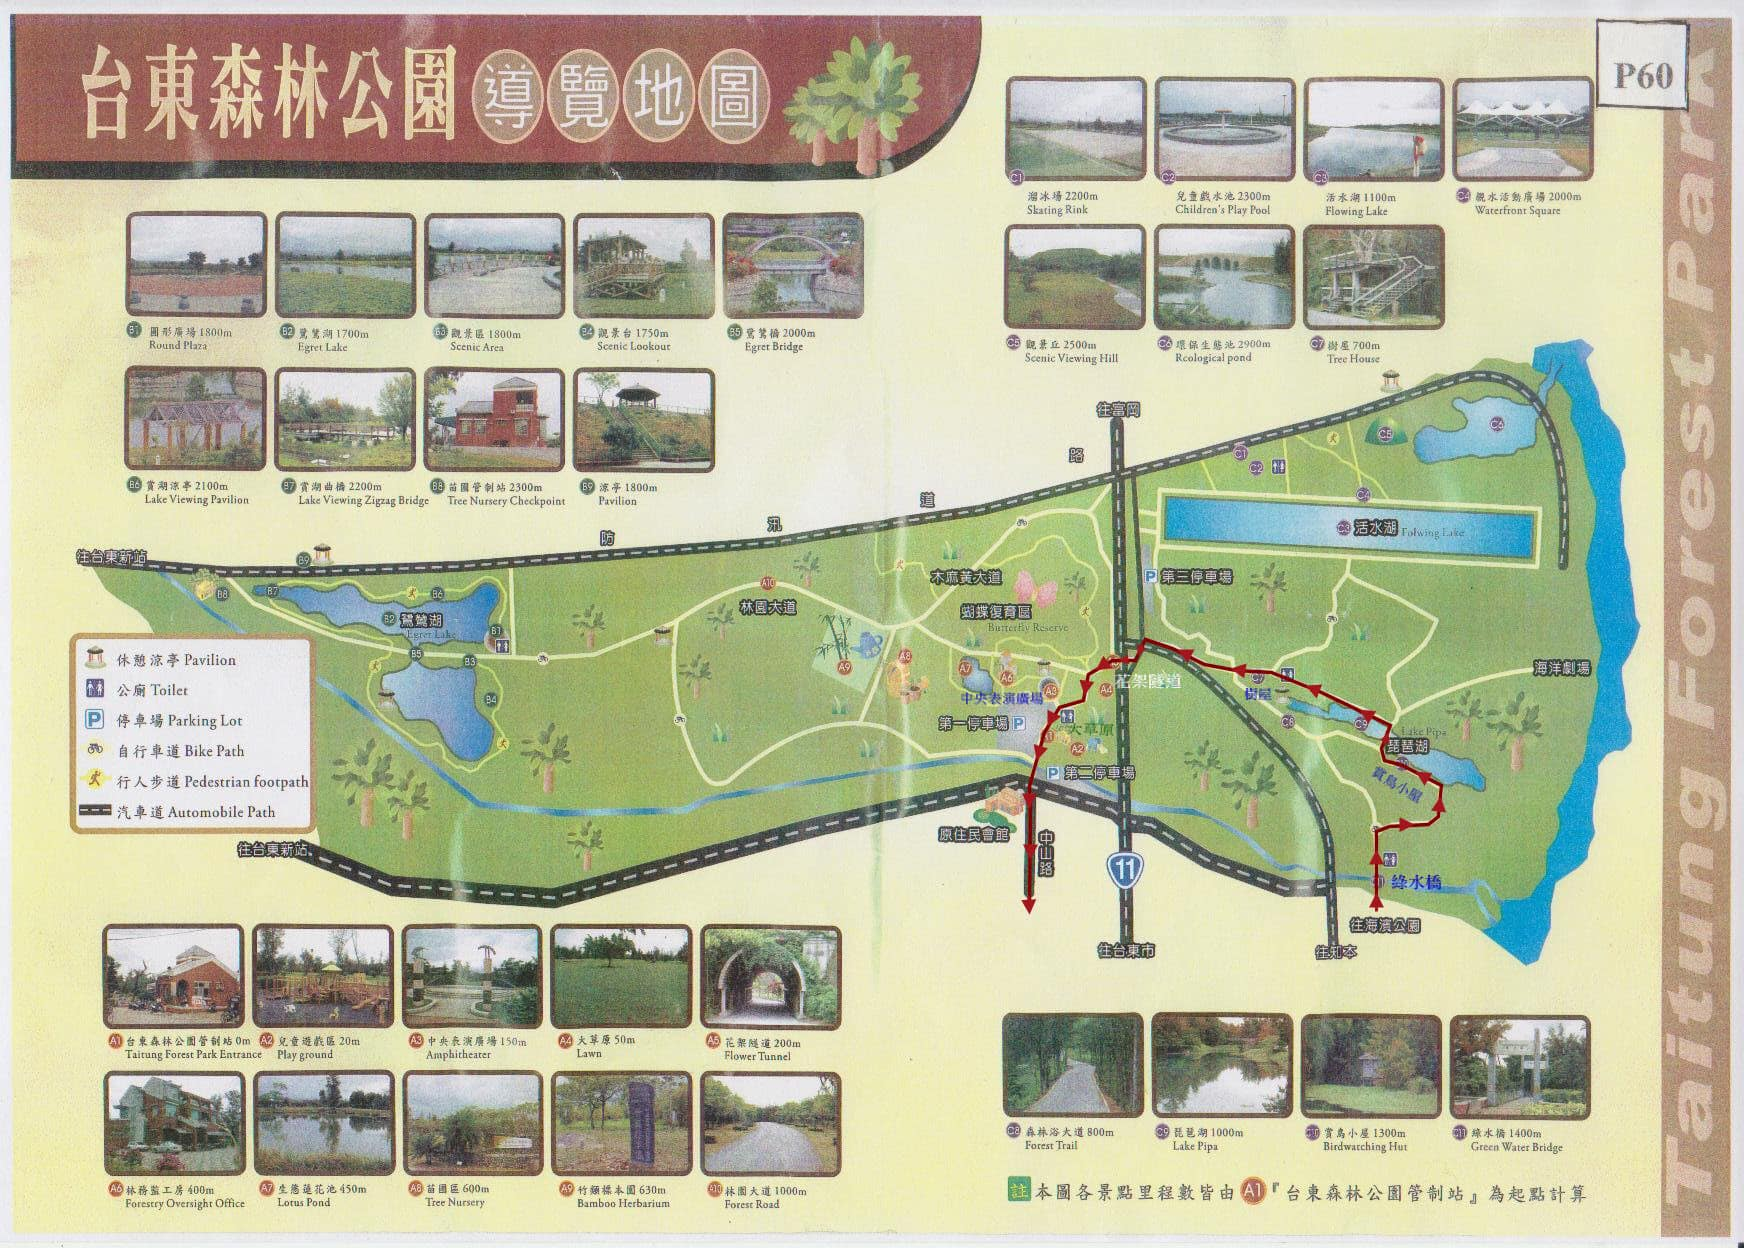 taitung-forest-park-walk-route